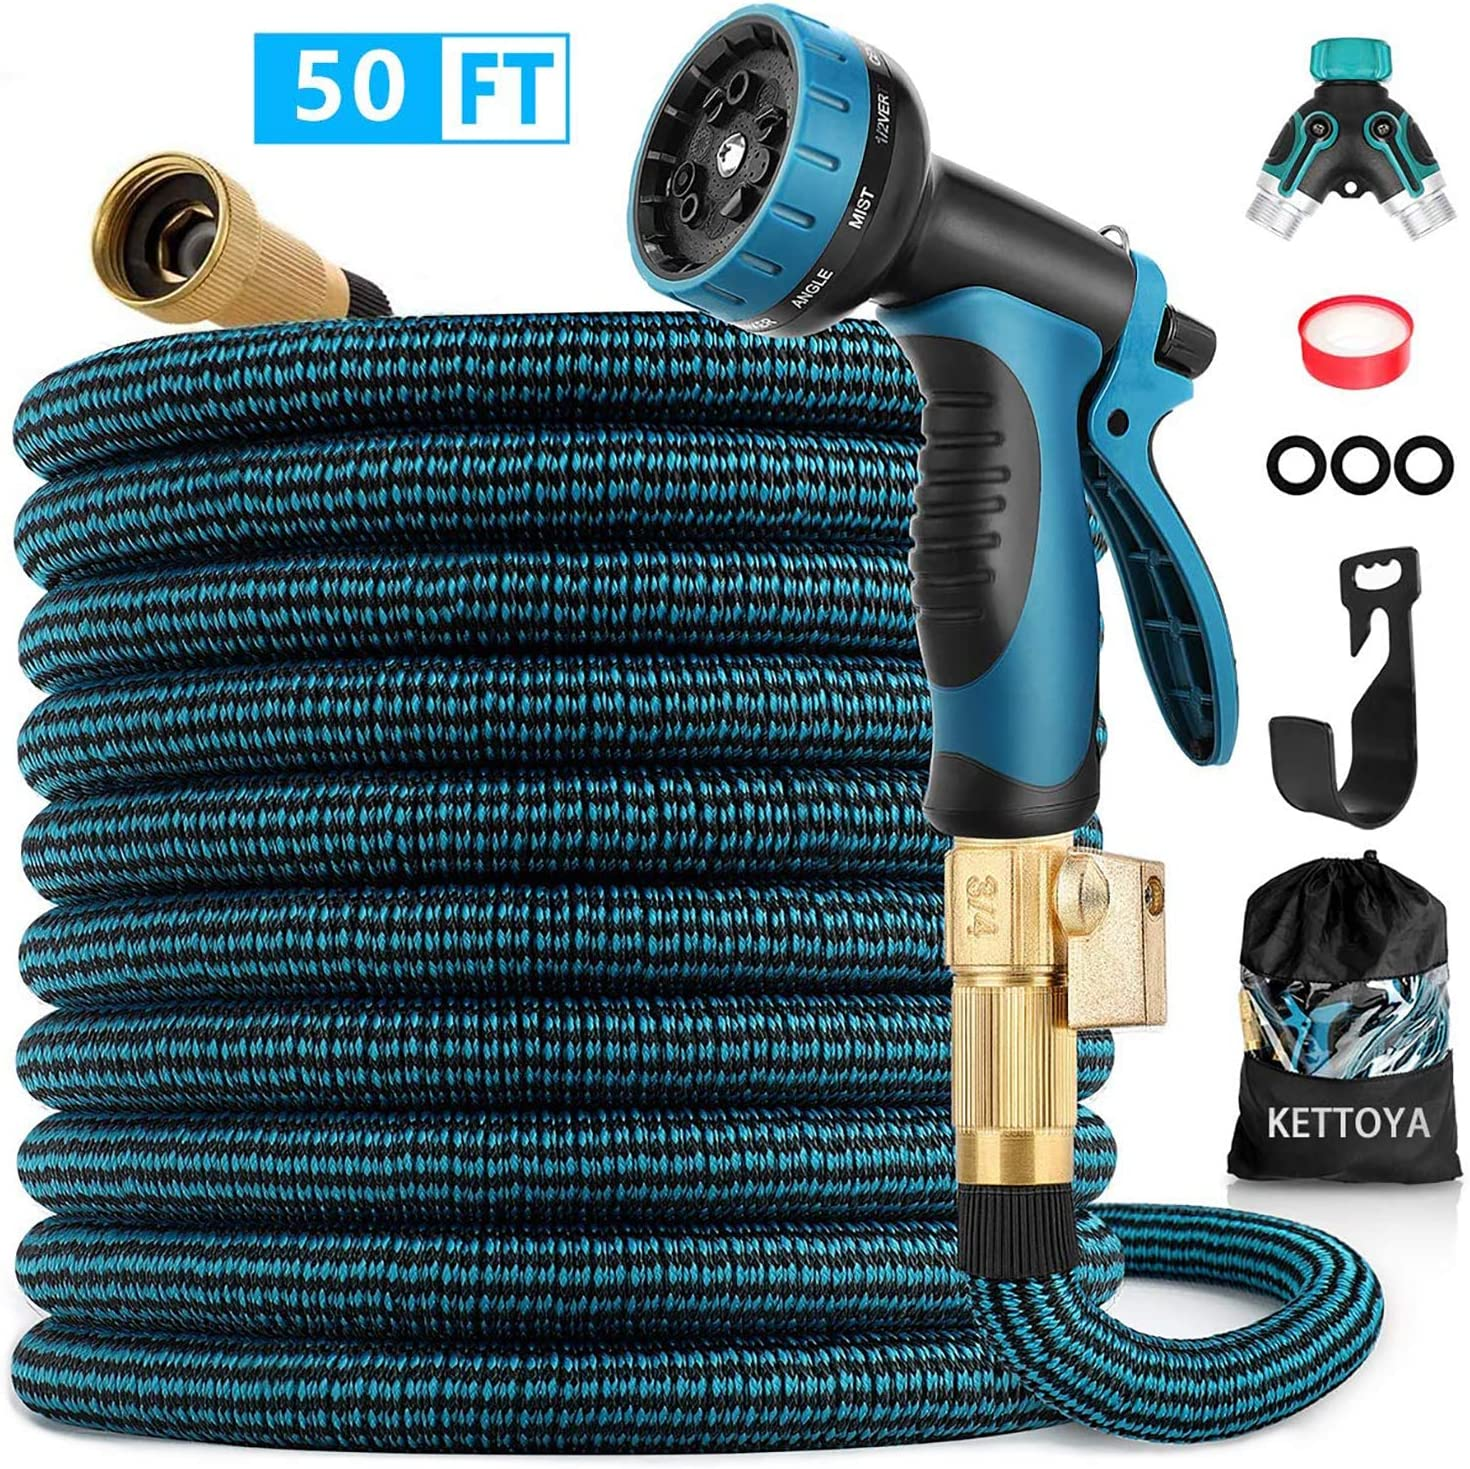 KETTOYA Expandable Garden Hose 50 FT, Heavy Duty Water Hose with 10 Patterns Spray Nozzle and Durable Latex Core, 3/4 Inch Solid Brass Fittings, Flexible Lightweight Retractable Shrinkable Water Hose